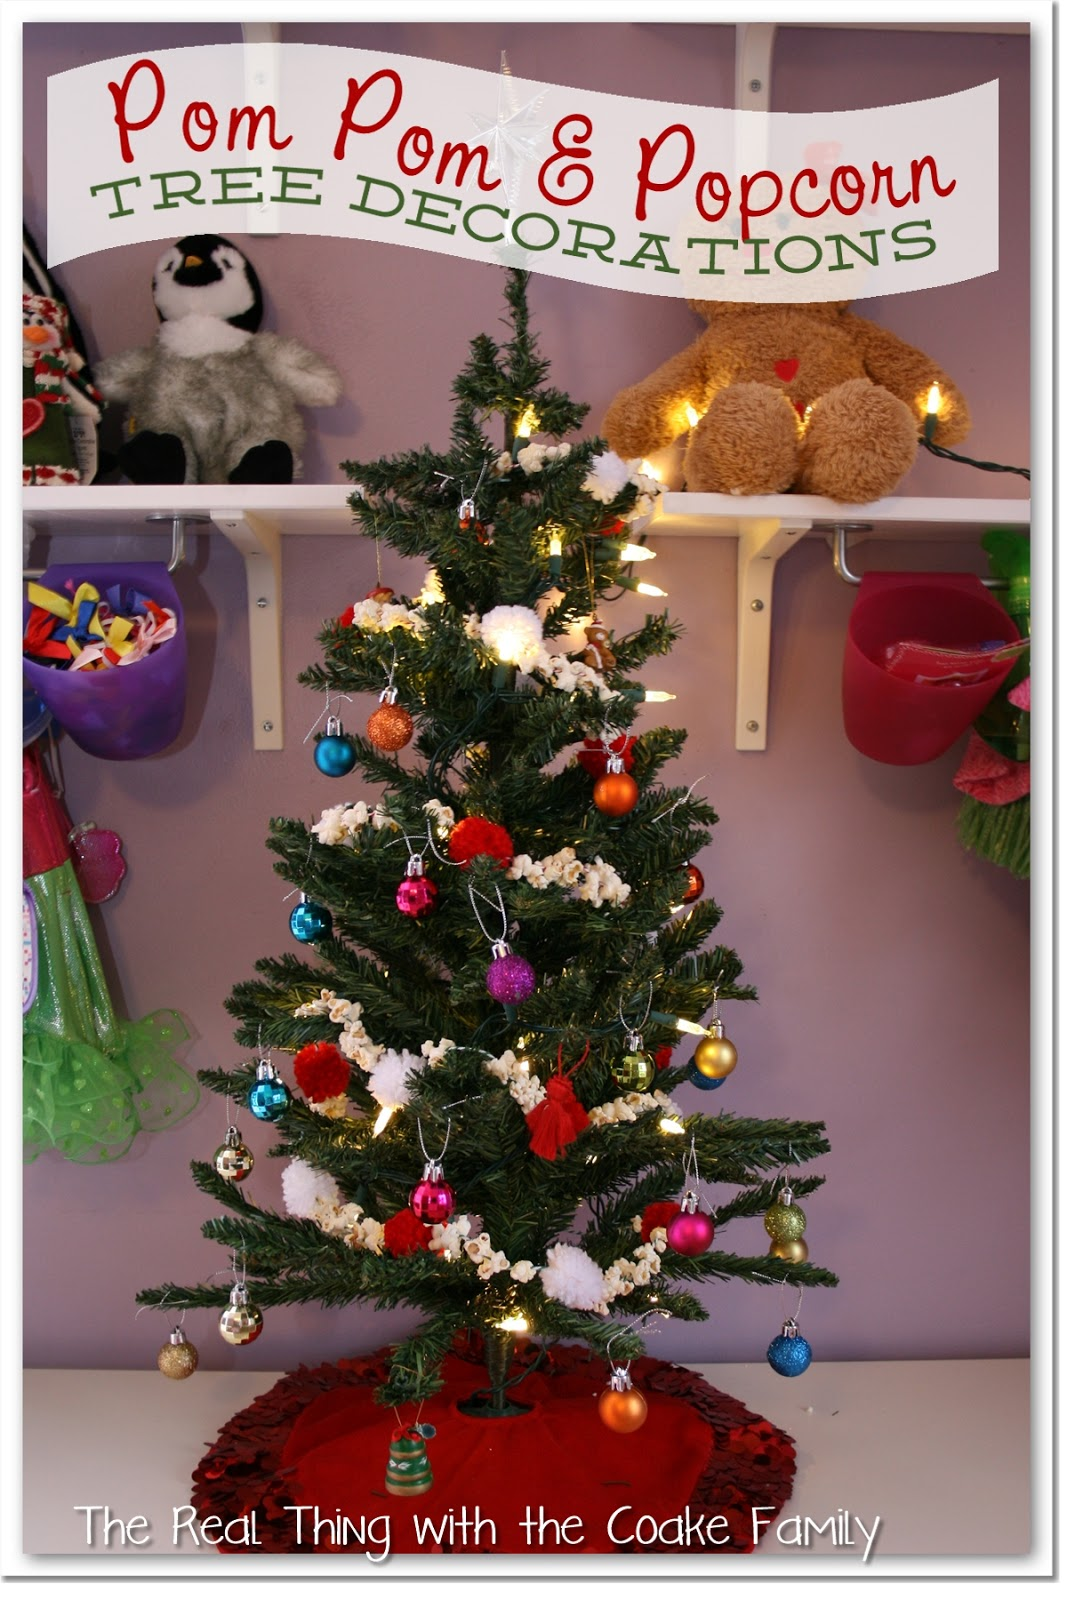 Tree Decorating Ideas: Popcorn and Pom Pom Garland - The ...